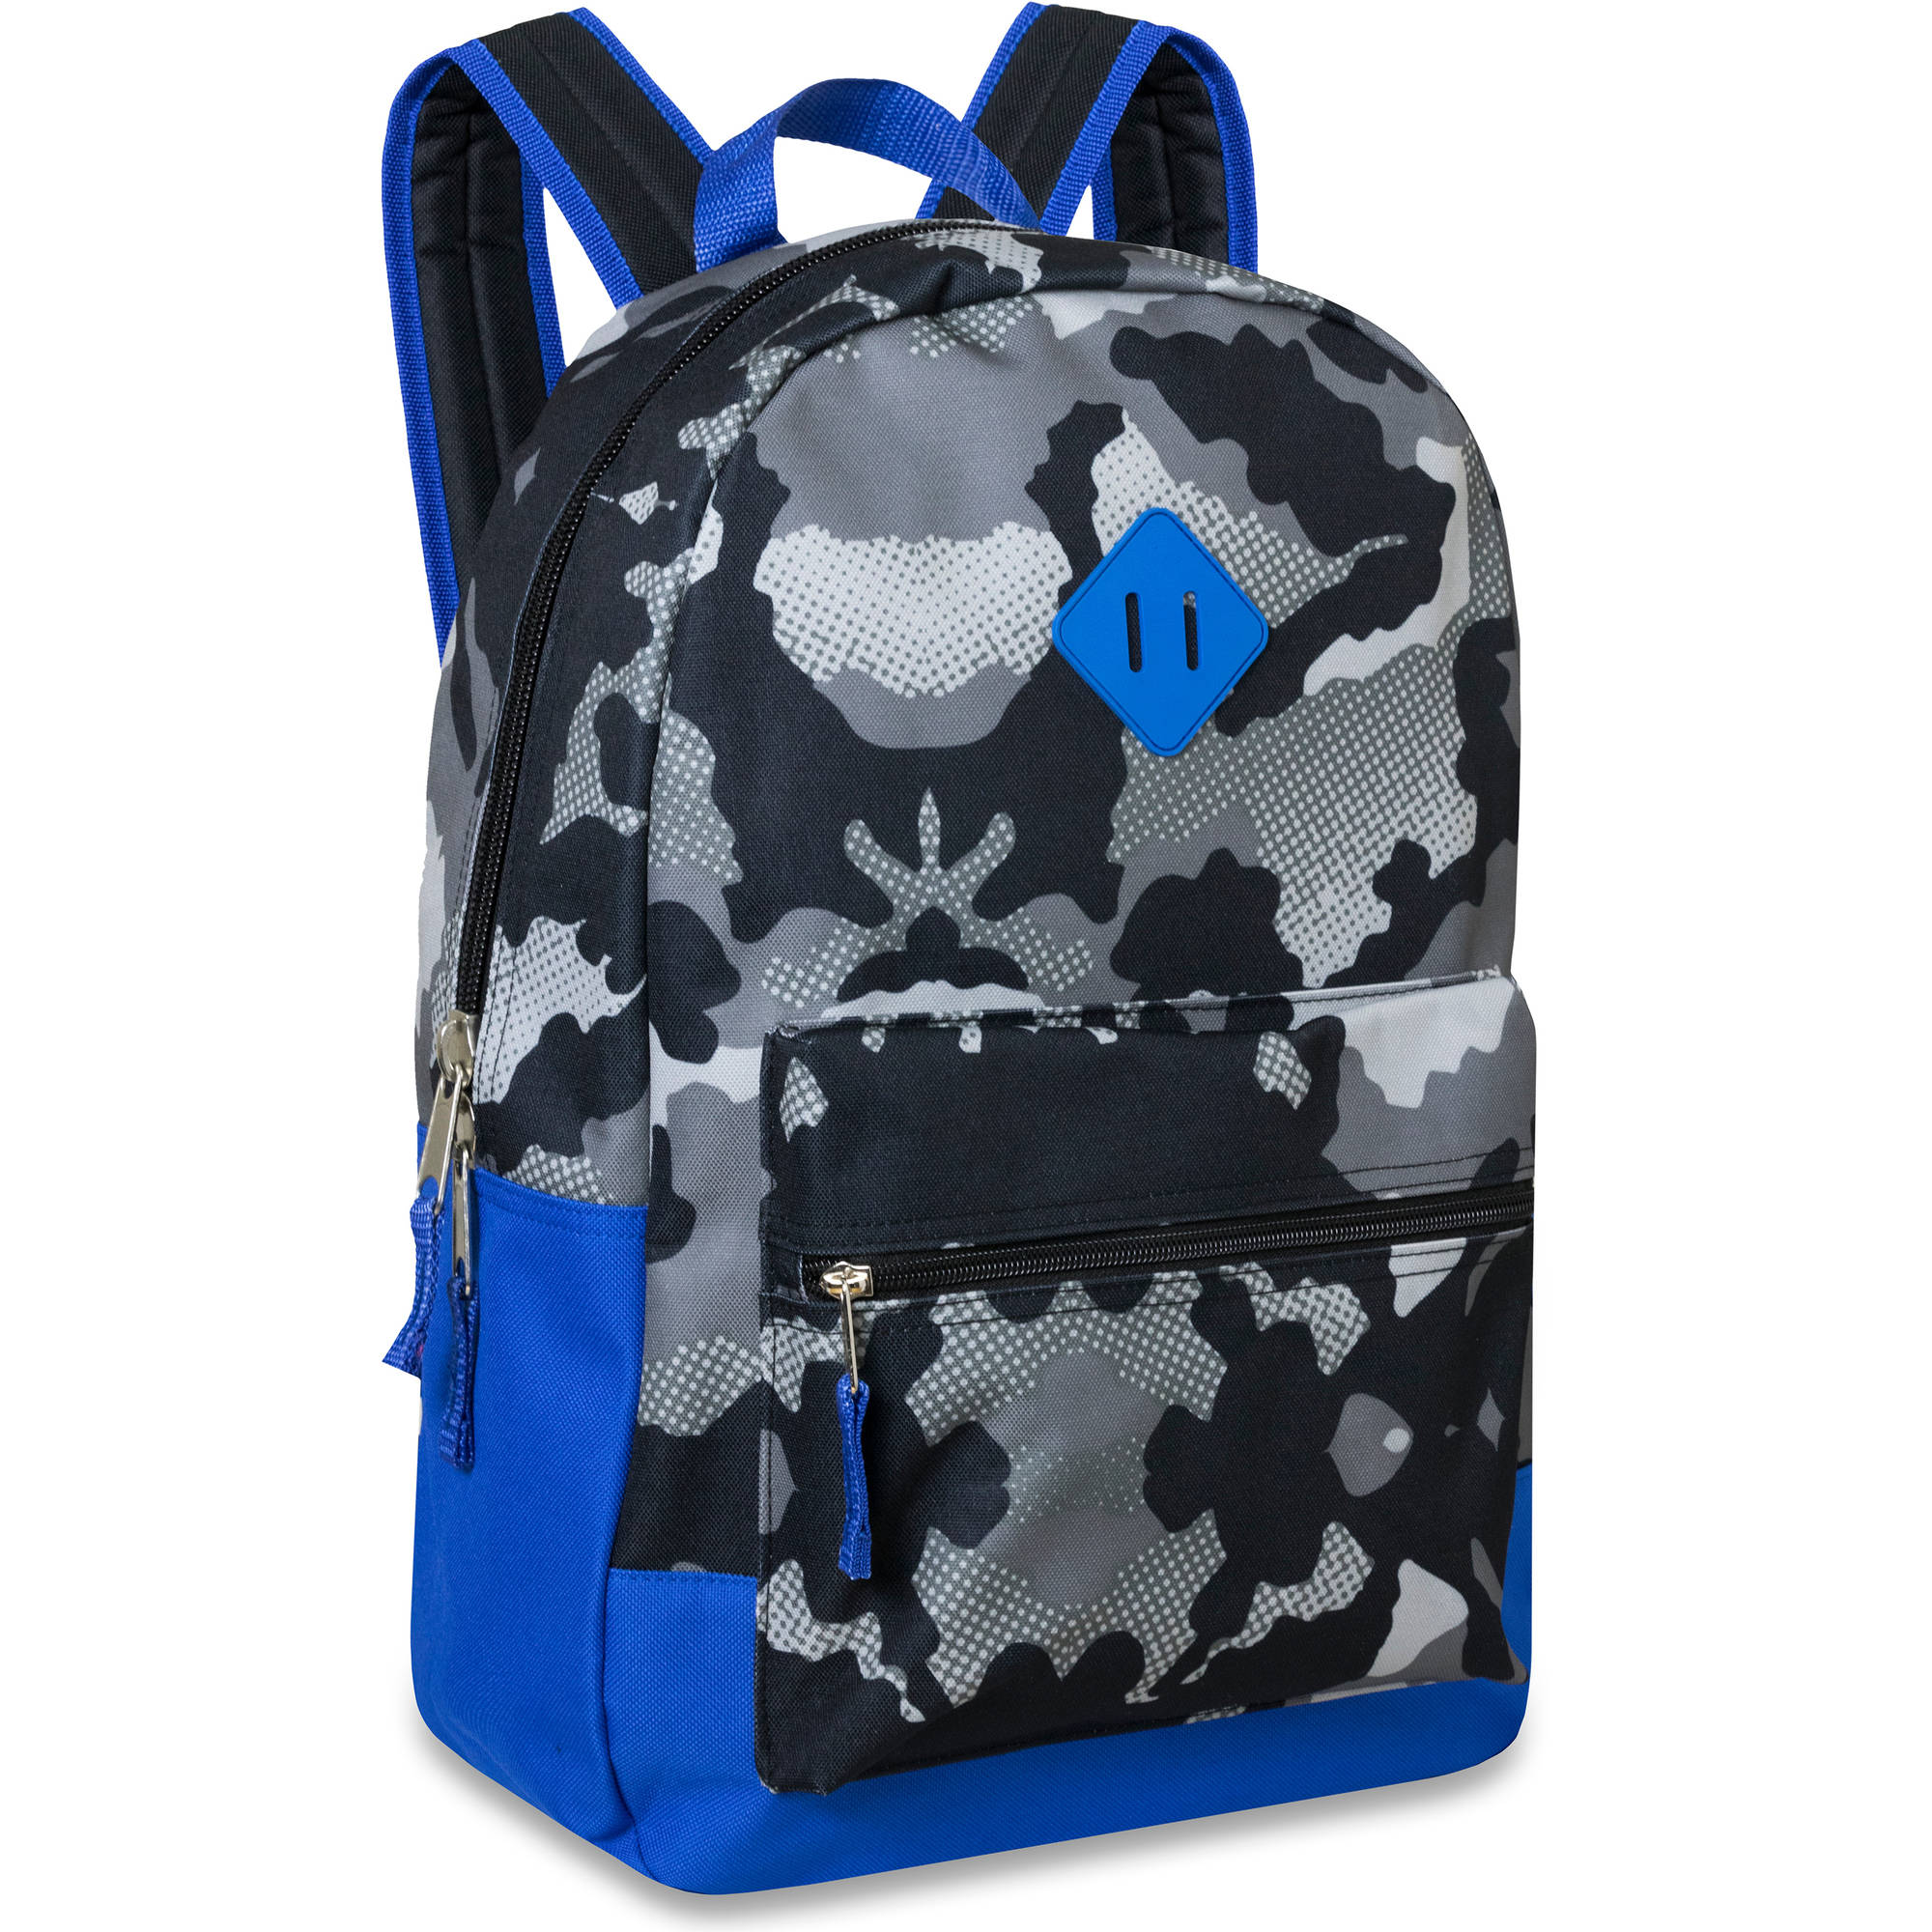 17 Inch Camouflage Printed Backpack With Front Accessory Pocket